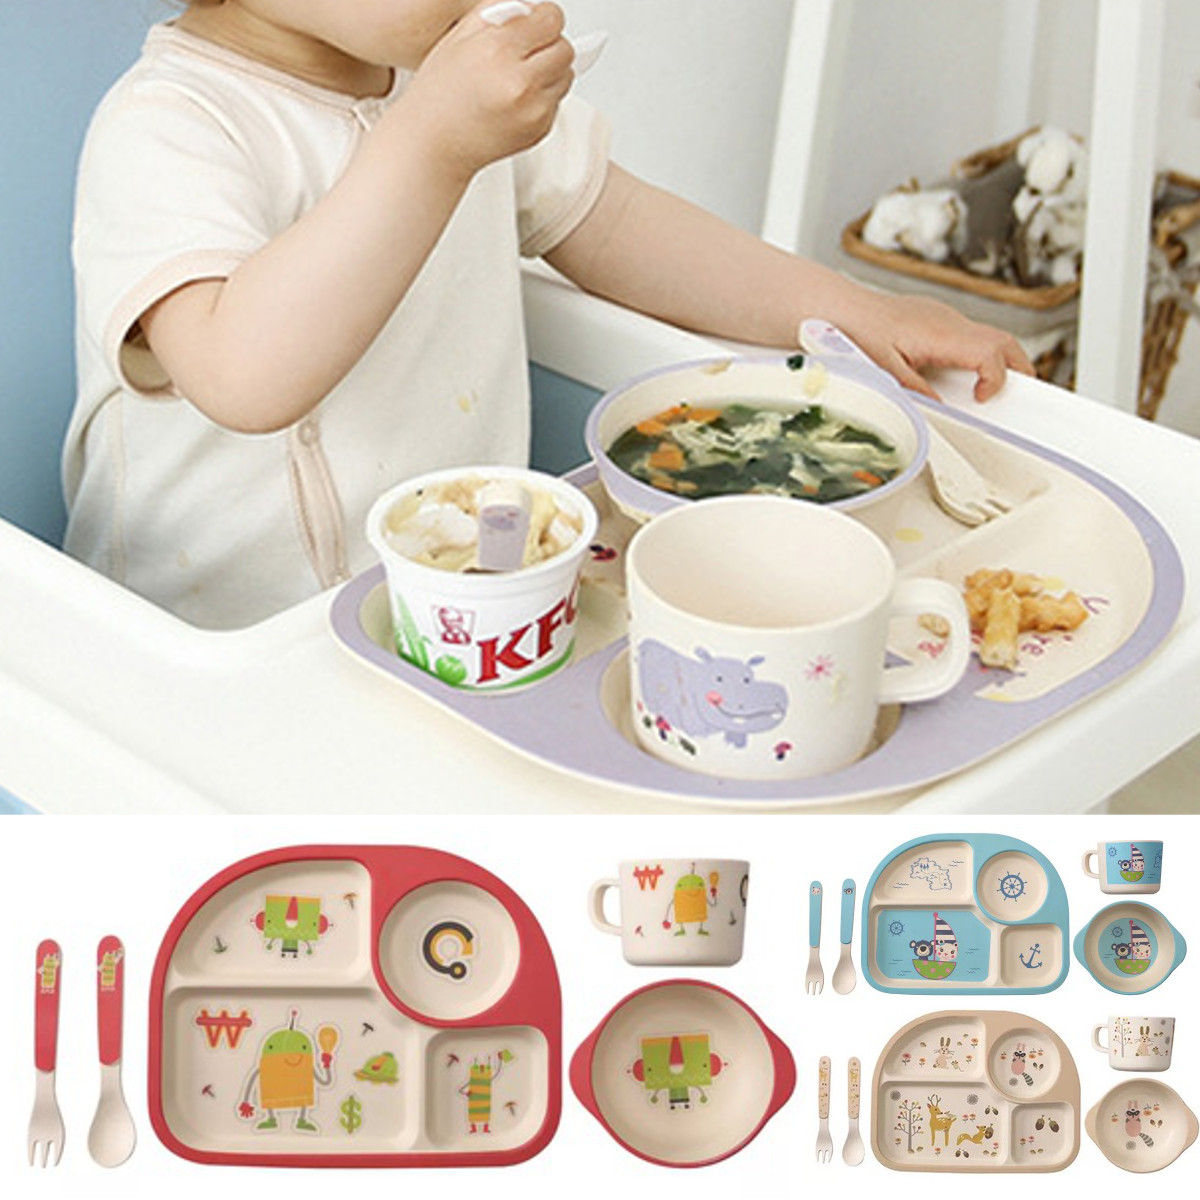 5Pcs/Set Baby Feeding Bowl Plate Dishes Fork Spoon Cup Children Tableware Bamboo Fiber Cartoon Separation Feeding Plate 4 Colors5Pcs/Set Baby Feeding Bowl Plate Dishes Fork Spoon Cup Children Tableware Bamboo Fiber Cartoon Separation Feeding Plate 4 Colors